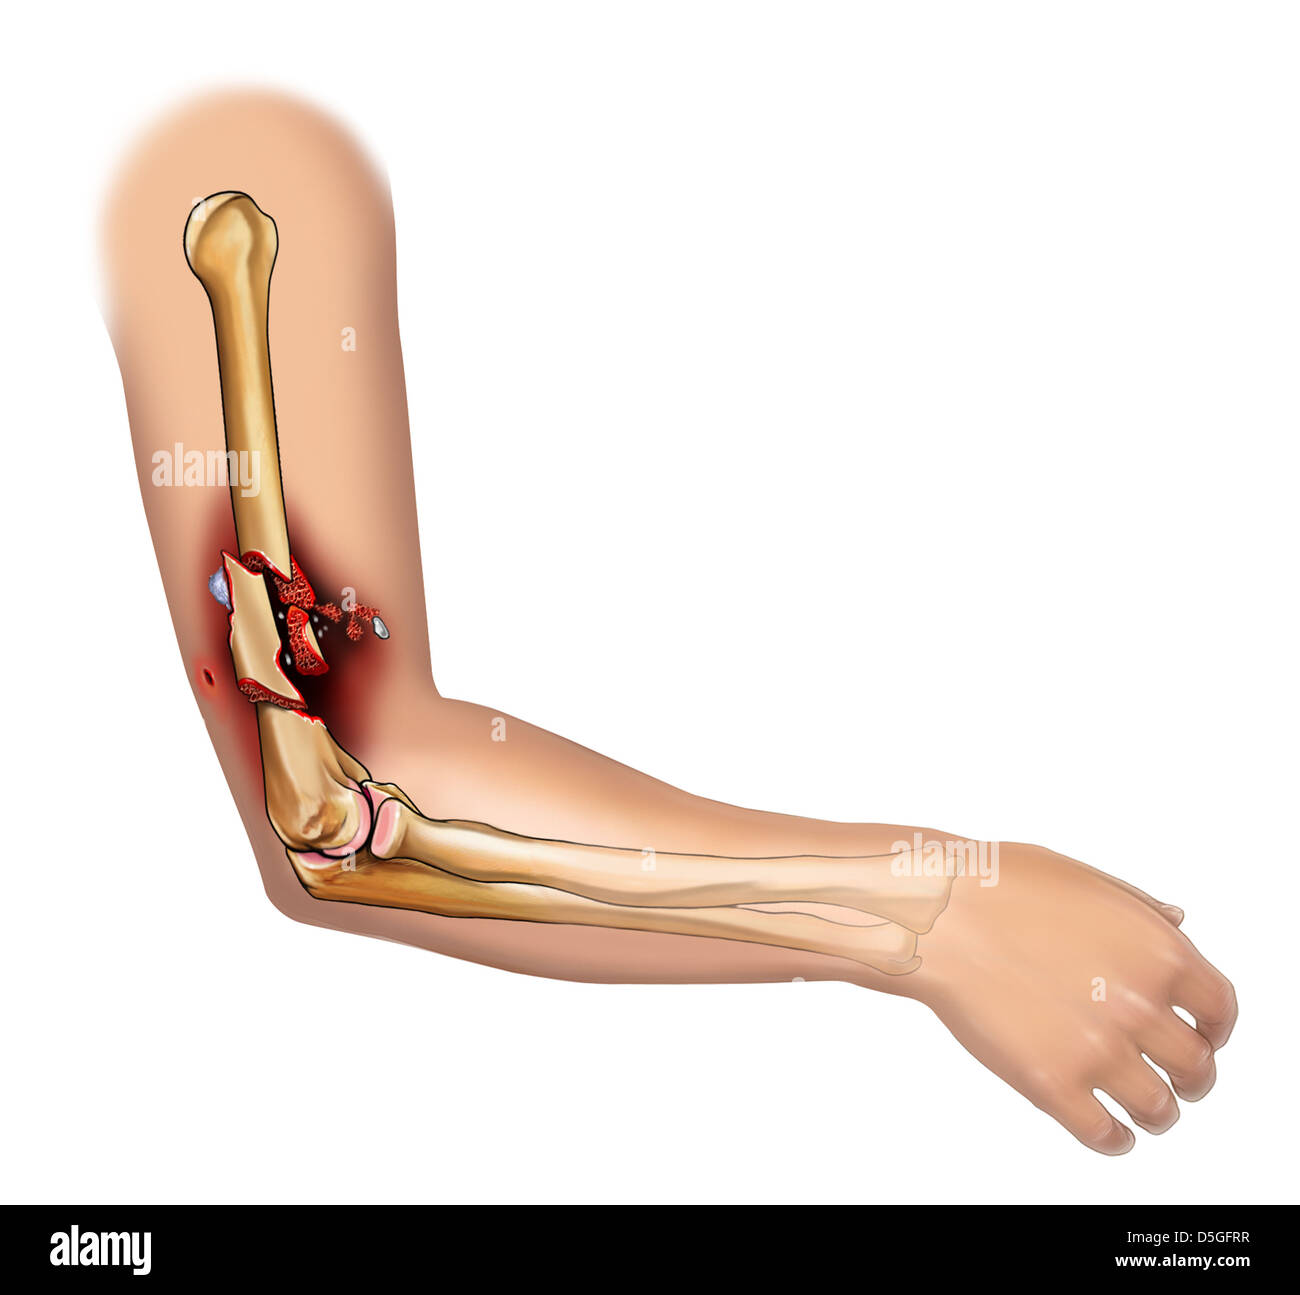 Comminuted Fracture Of The Humerus Stock Photo 55068043 Alamy